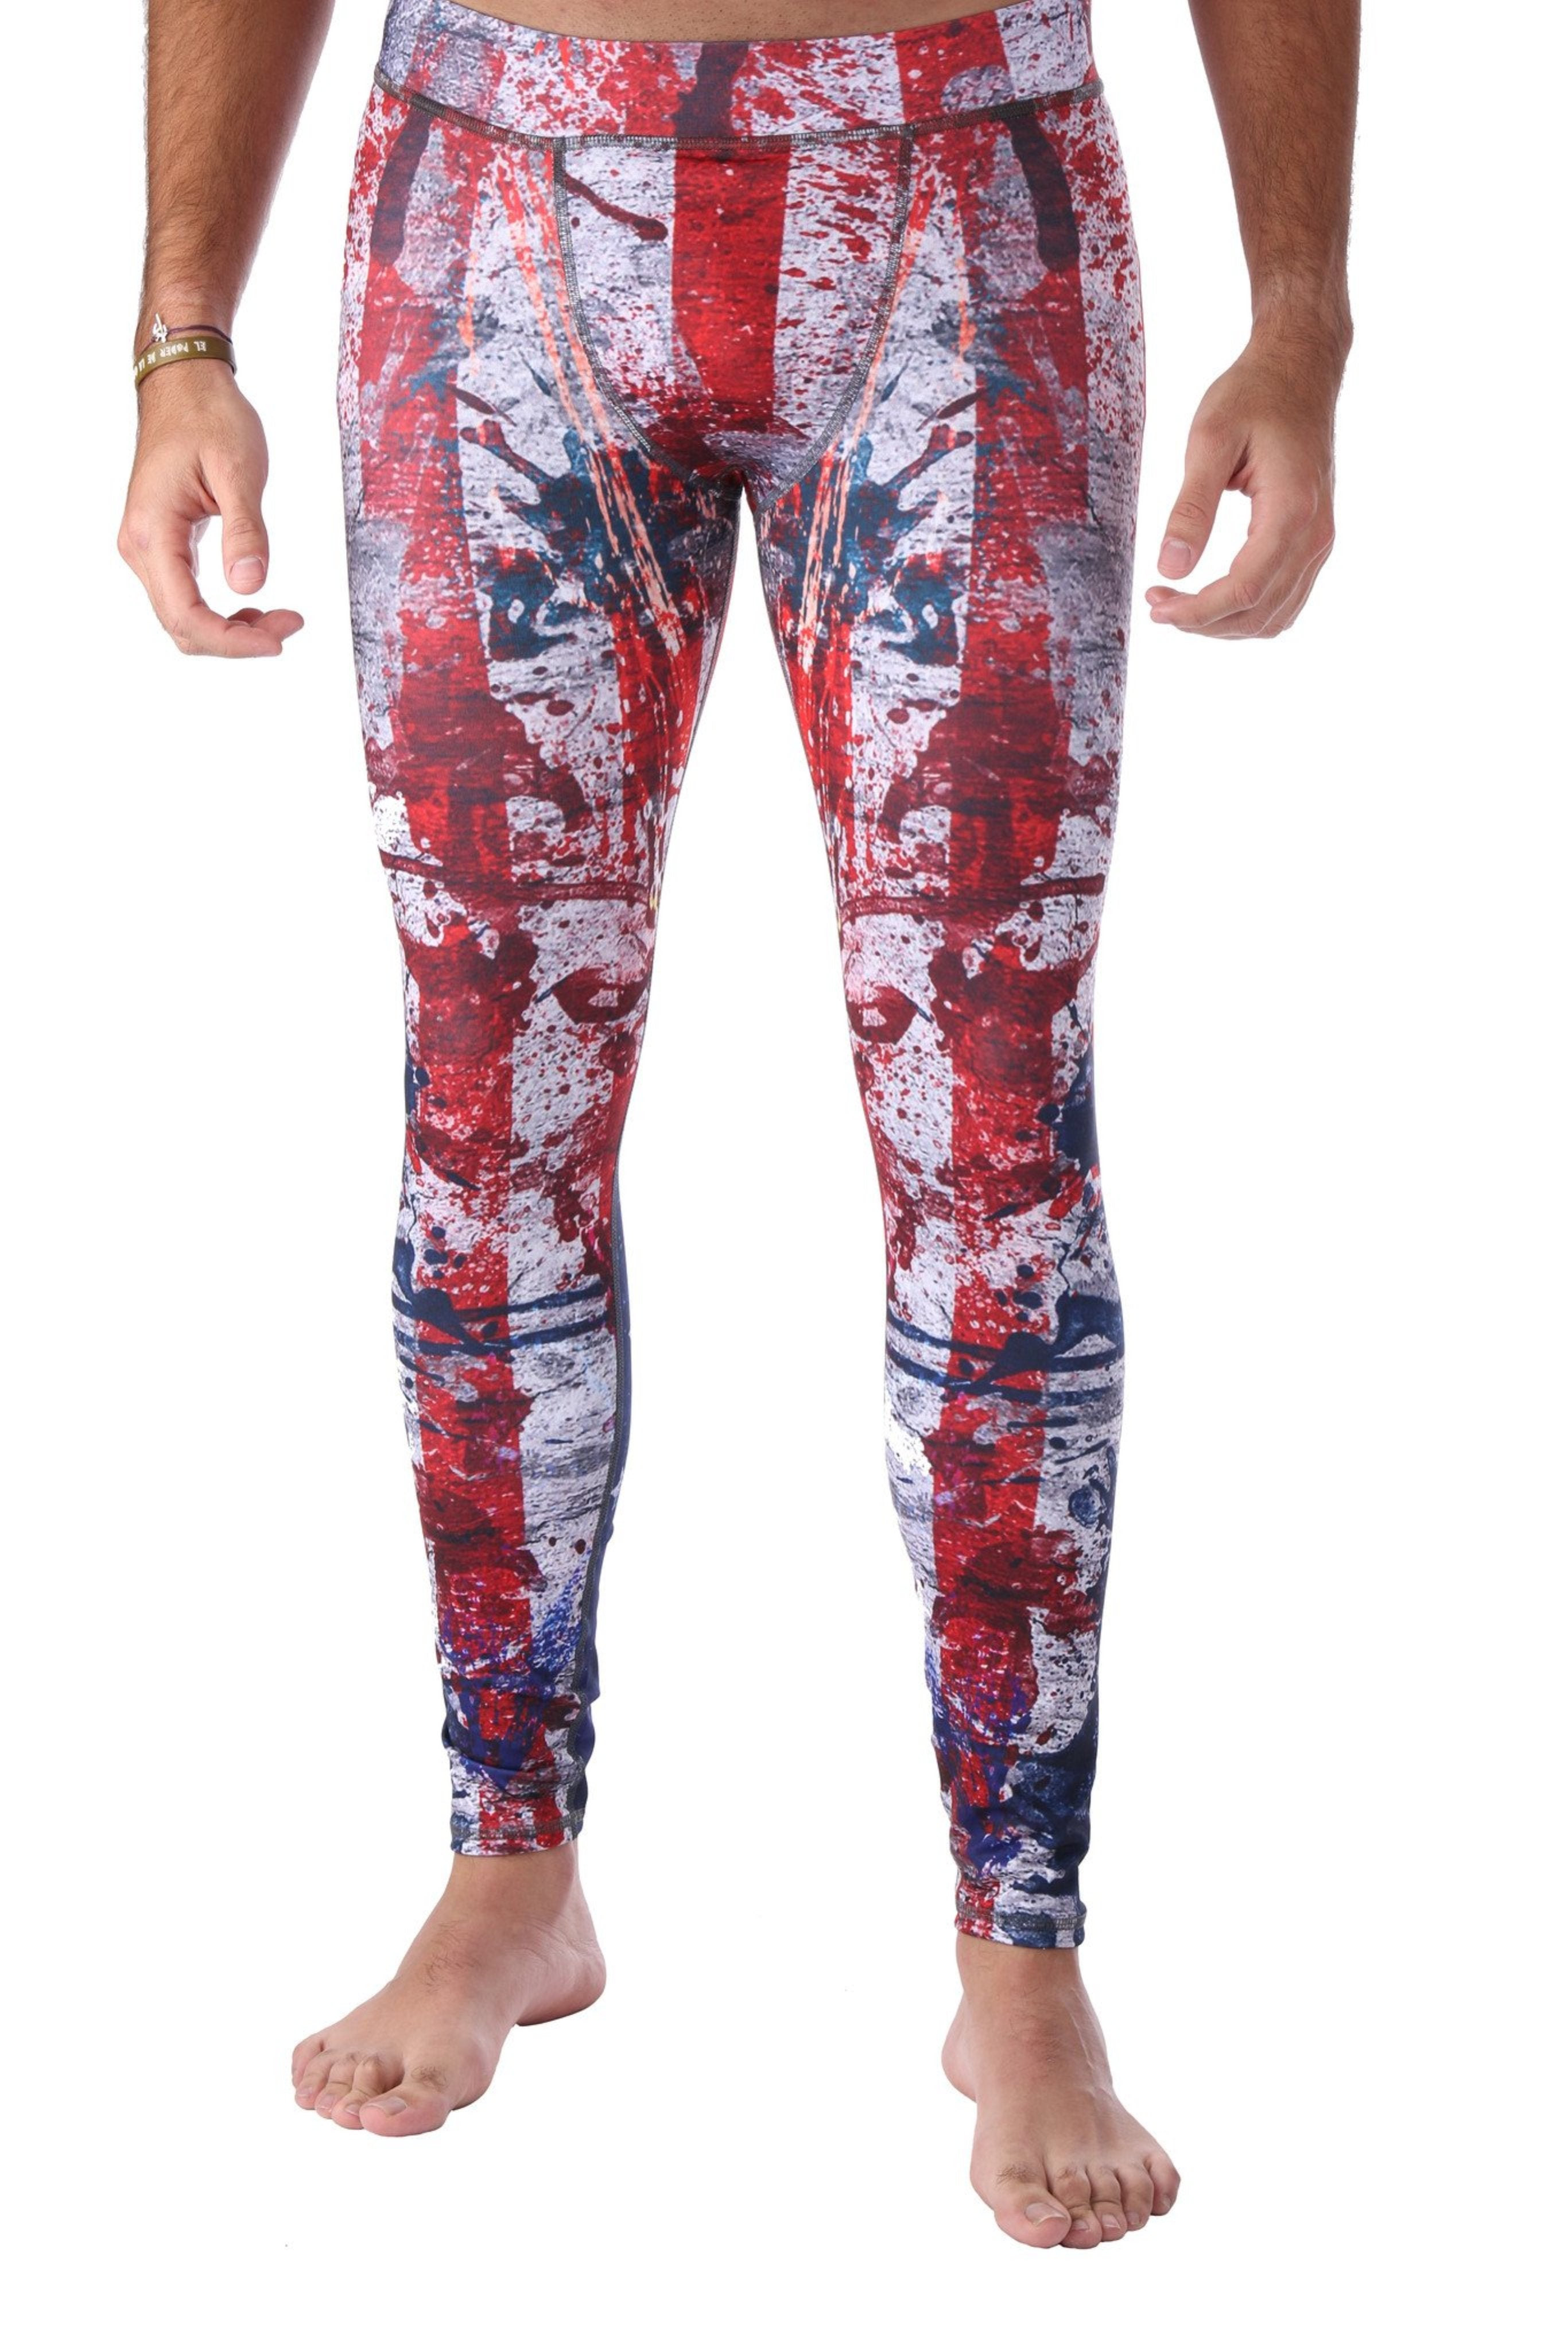 Yoga Pants Mens American Patriotic Legging By LavaLoka Red White And Blue